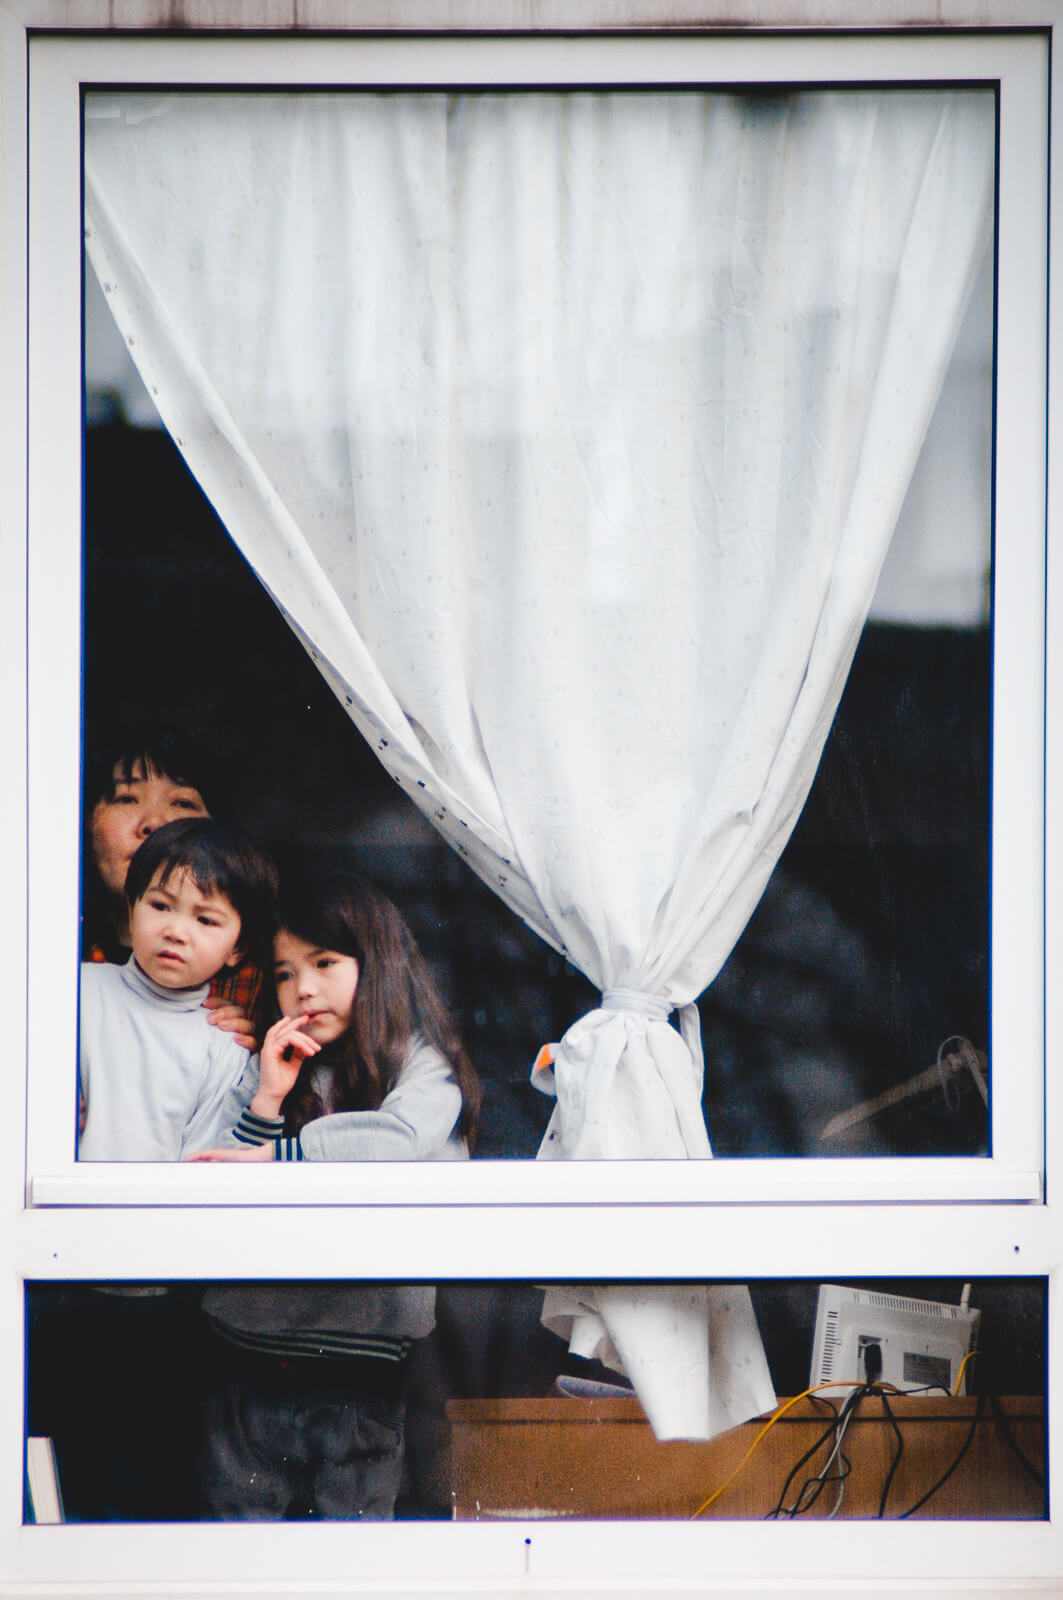 Two asian kids and their mother stading behind a closed window and wondering what is going on outside